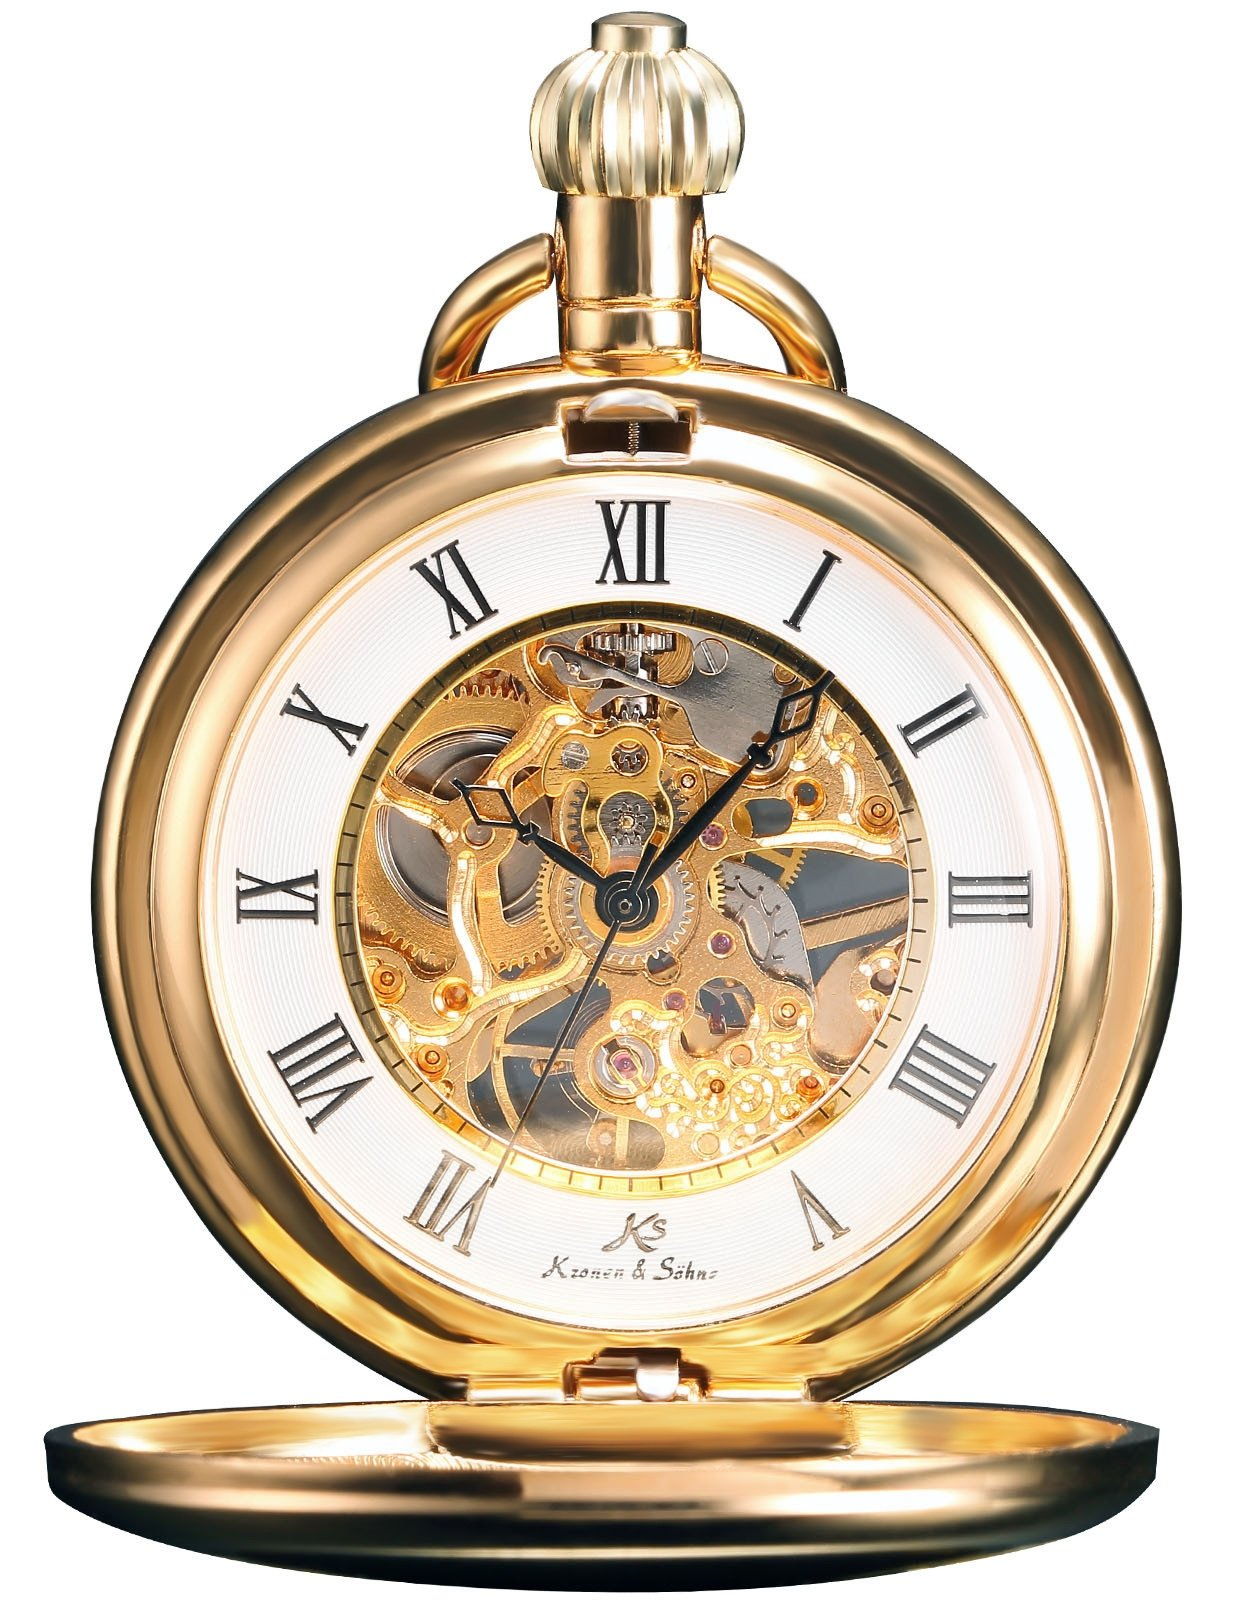 HELMASK pocket watch - Alloy Golden Round mens Analog Mechanical Hand-winding Full hunter Pocket Watch